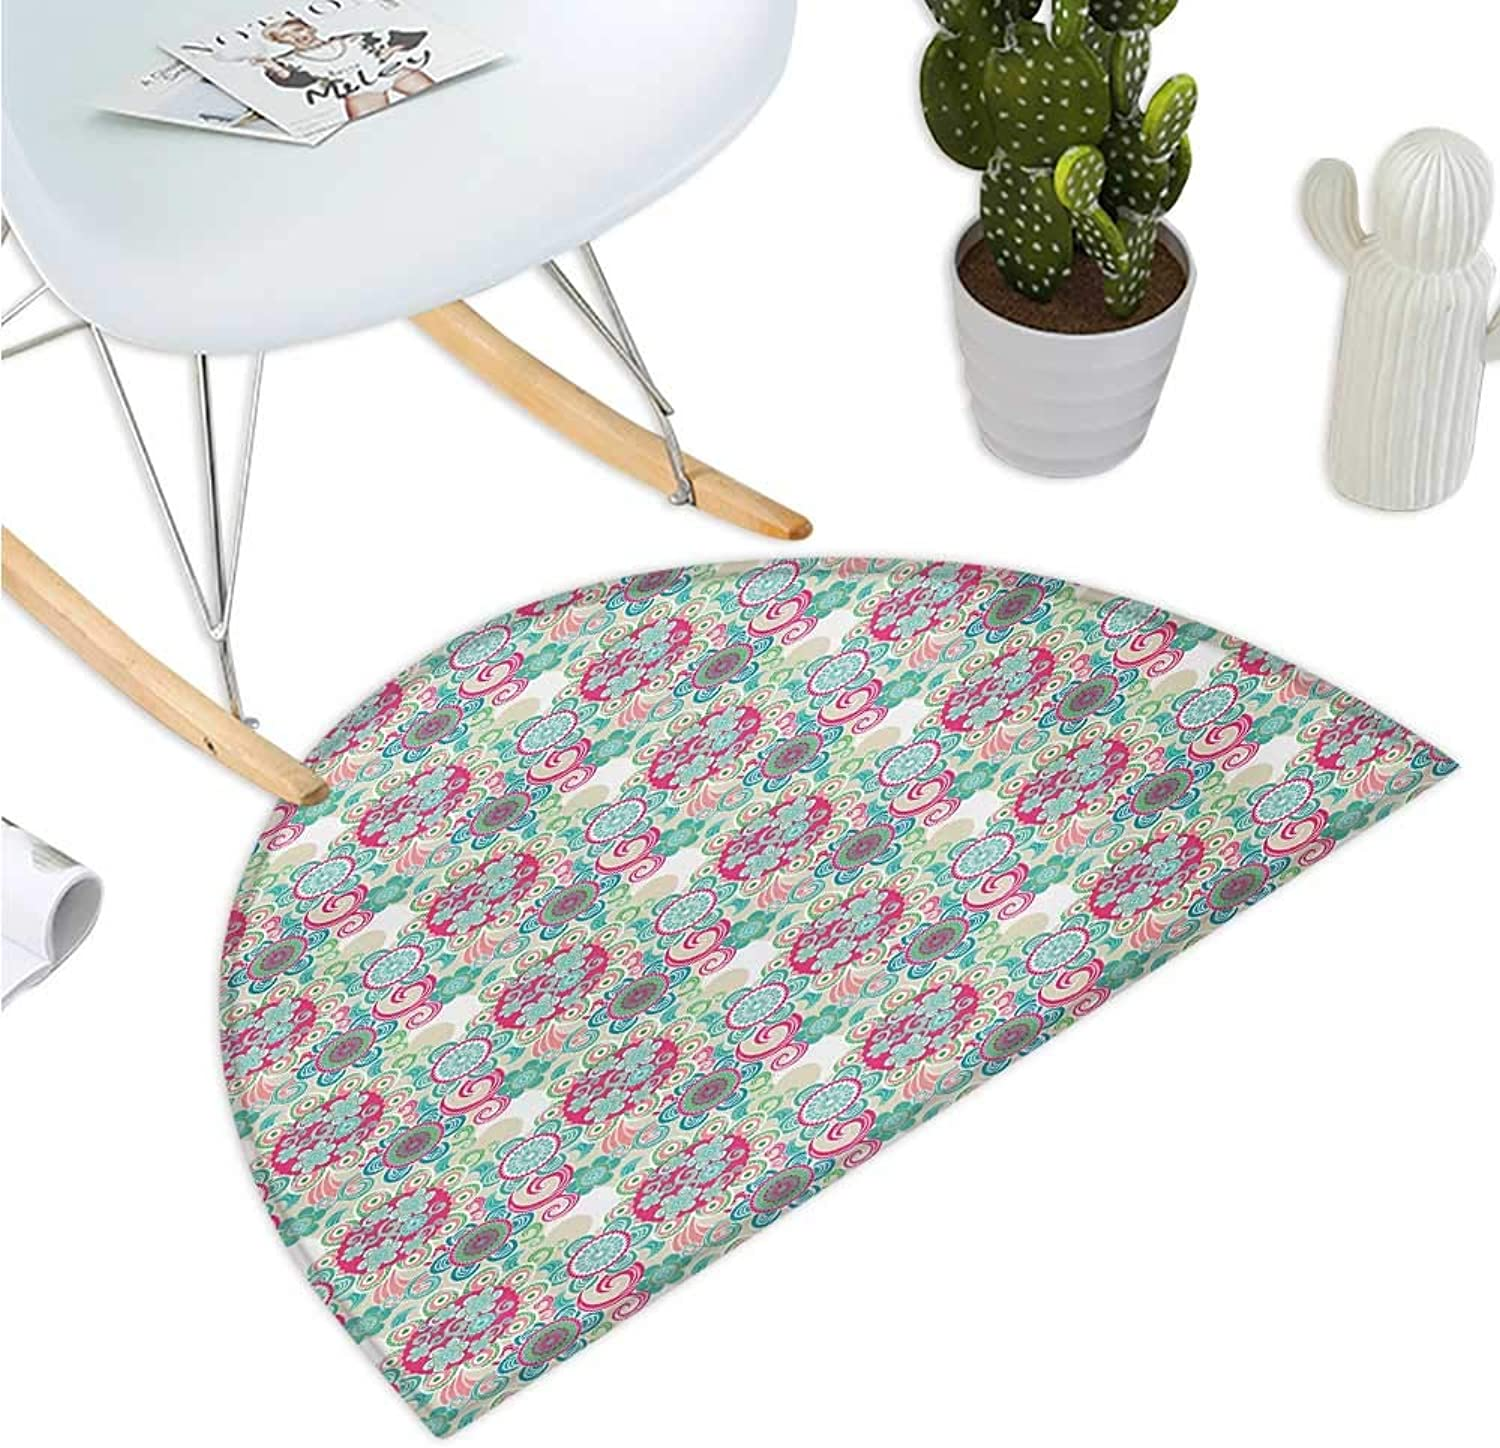 Ethnic Semicircle Doormat South East Asian Motifs of colorful Flowers Oriental Cultures Inspirations Pattern Entry Door Mat H 47.2  xD 70.8  Multicolor